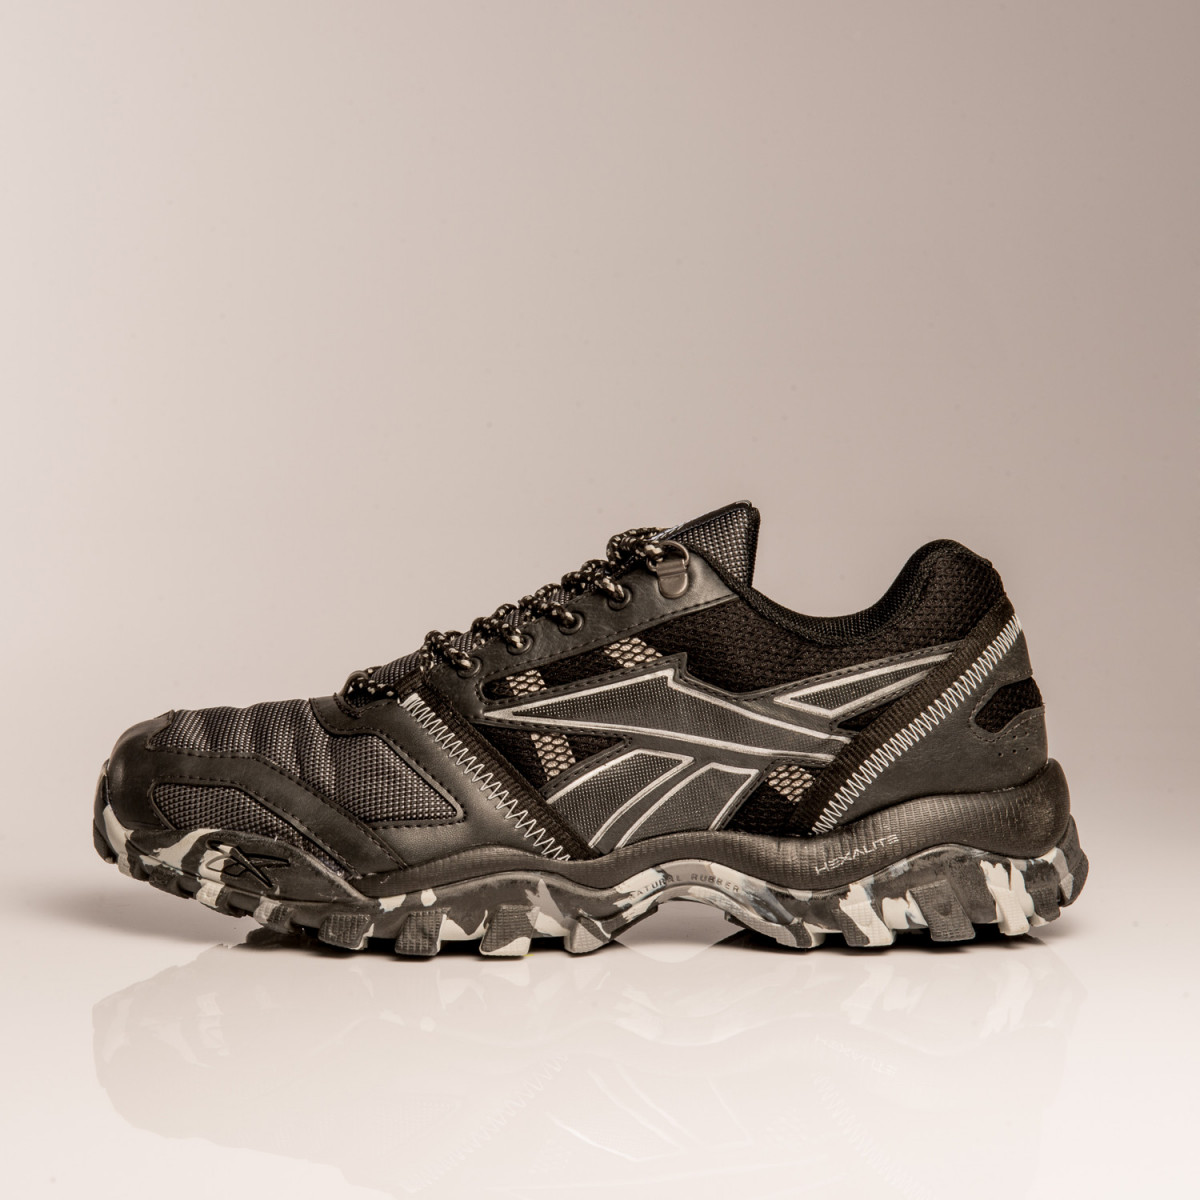 ZAPATILLAS REEBOK ADV GRIP